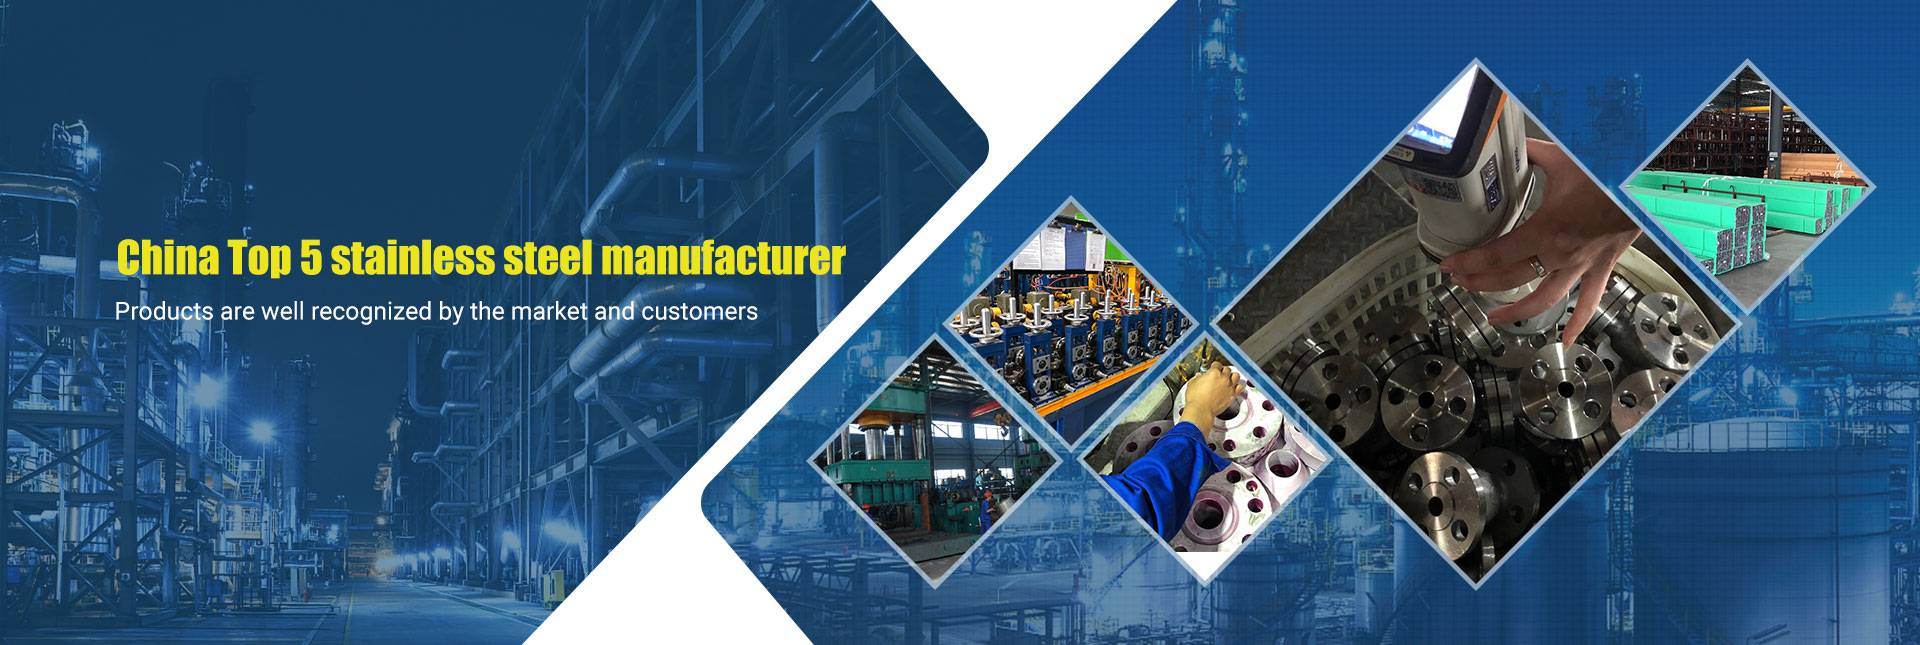 China Top 5 stainless steel manufacturer